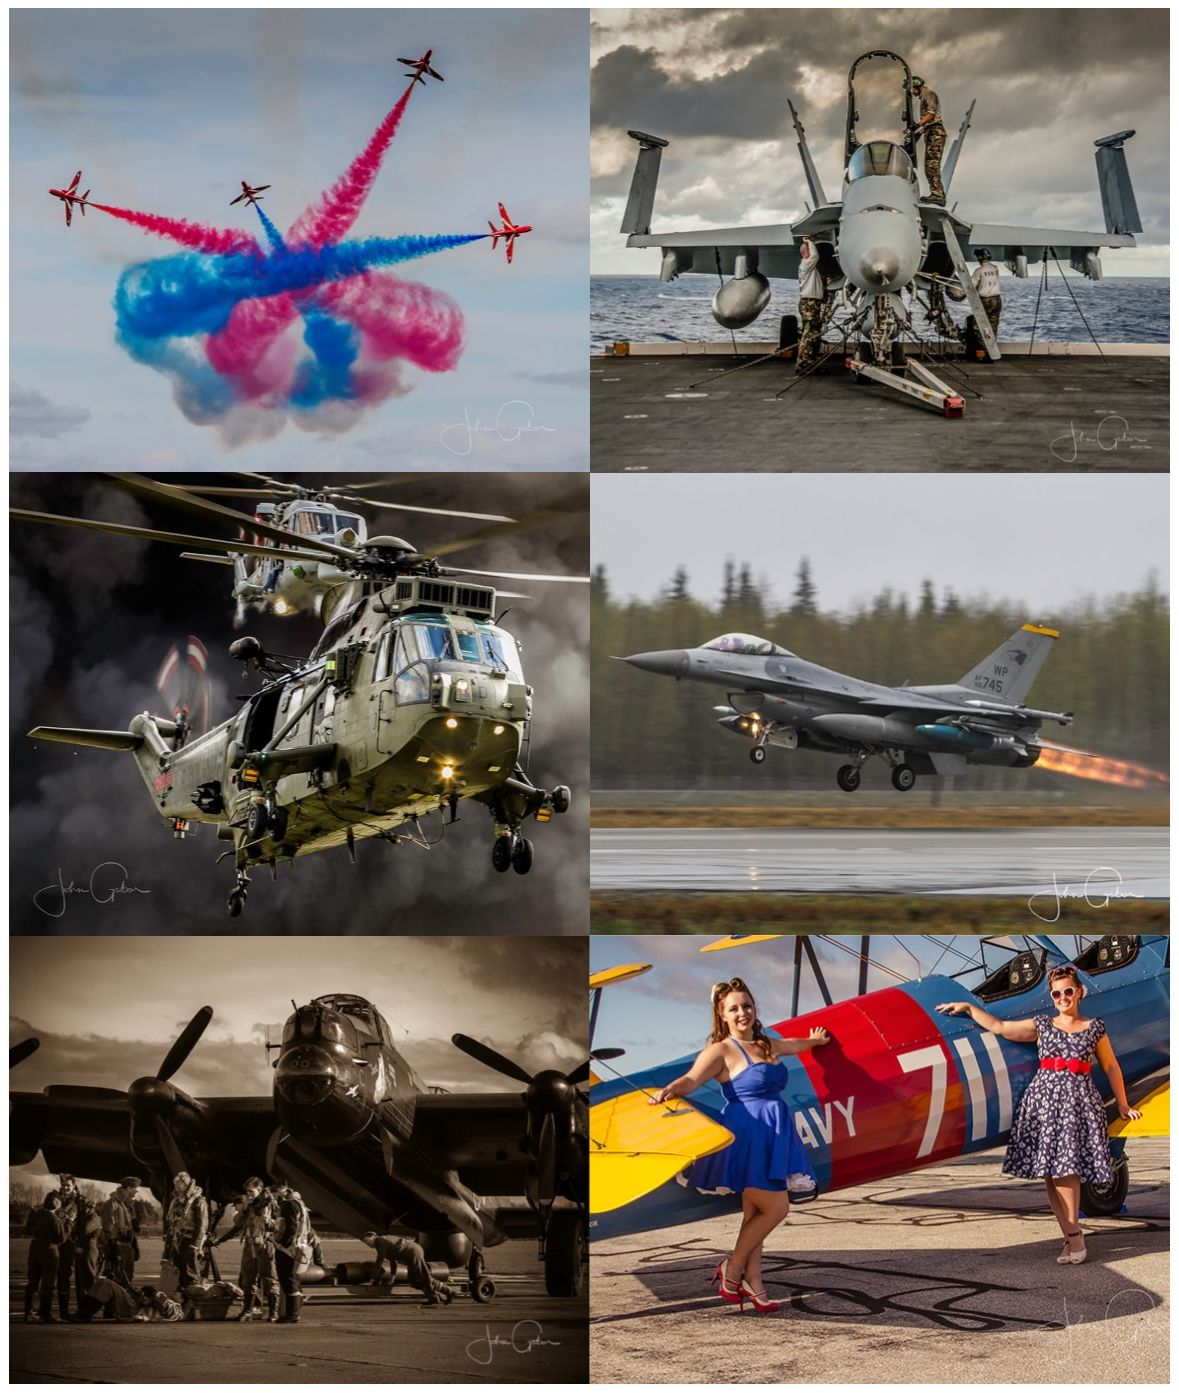 Samples of John Gabor's photography work featuring military and civilian aircraft.